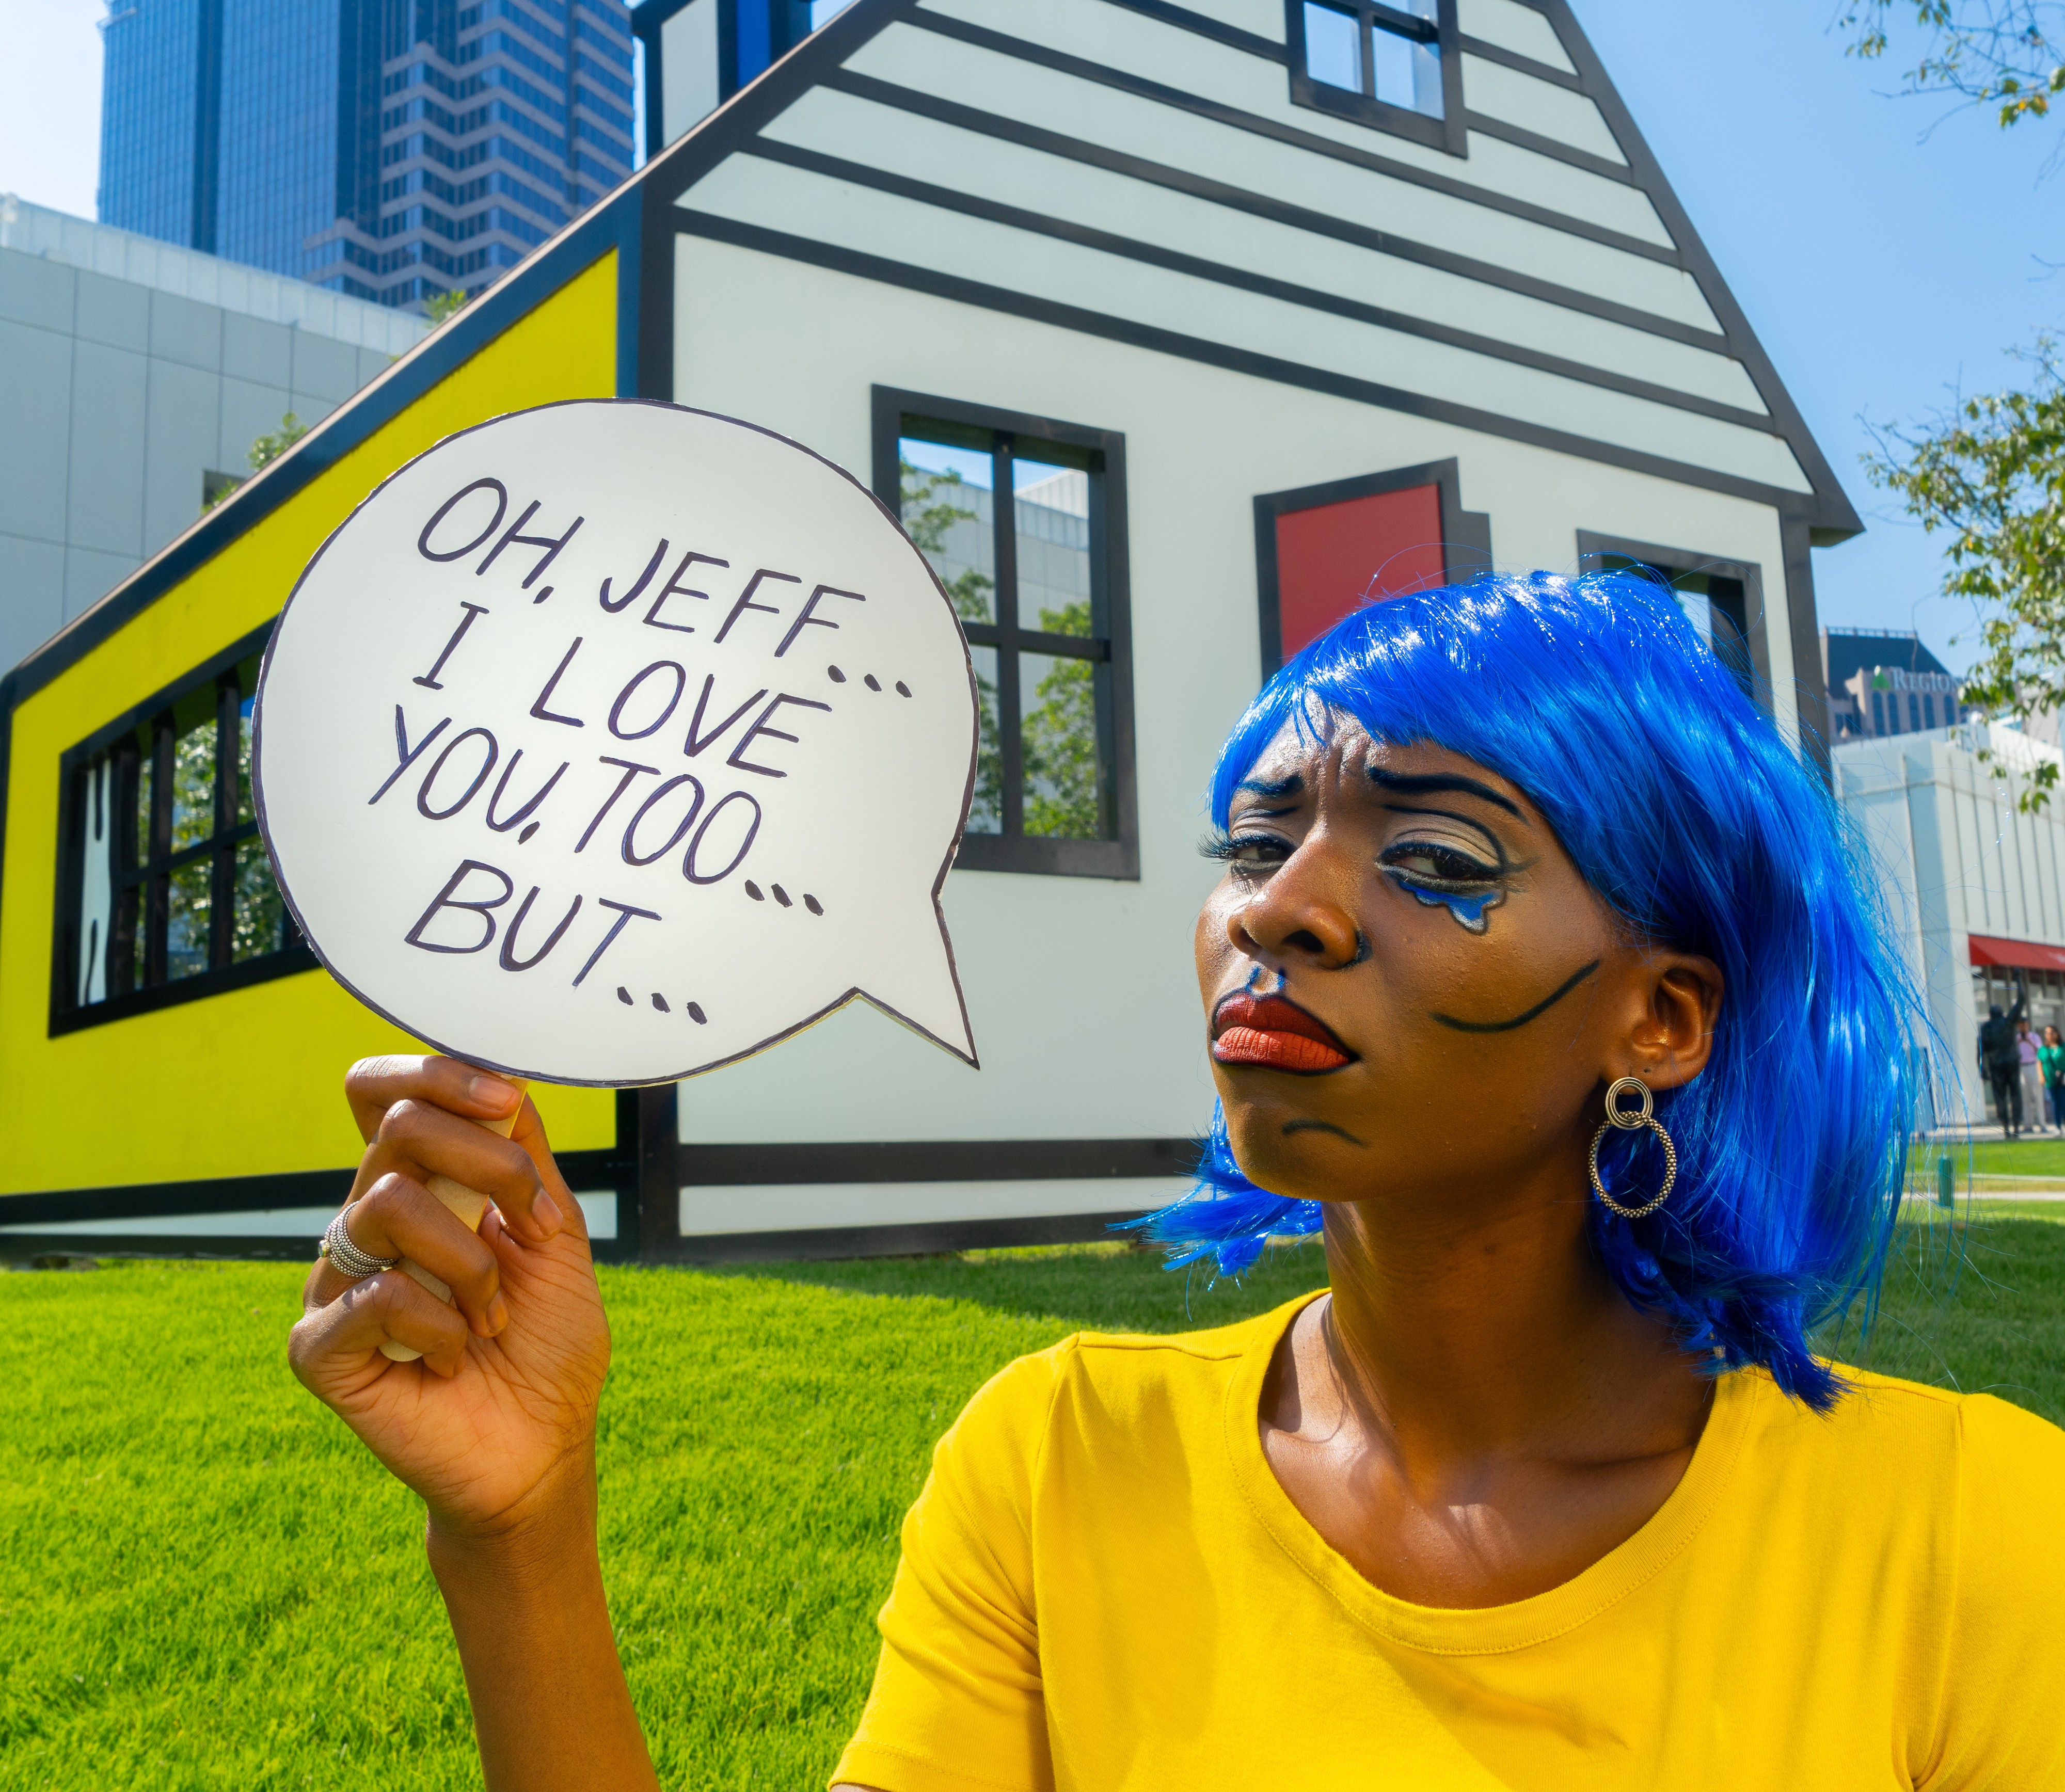 """A young black woman with comic style makeup and a blue wig holds a speech bubble saying """"Oh, Jeff, I love you, too but…""""."""